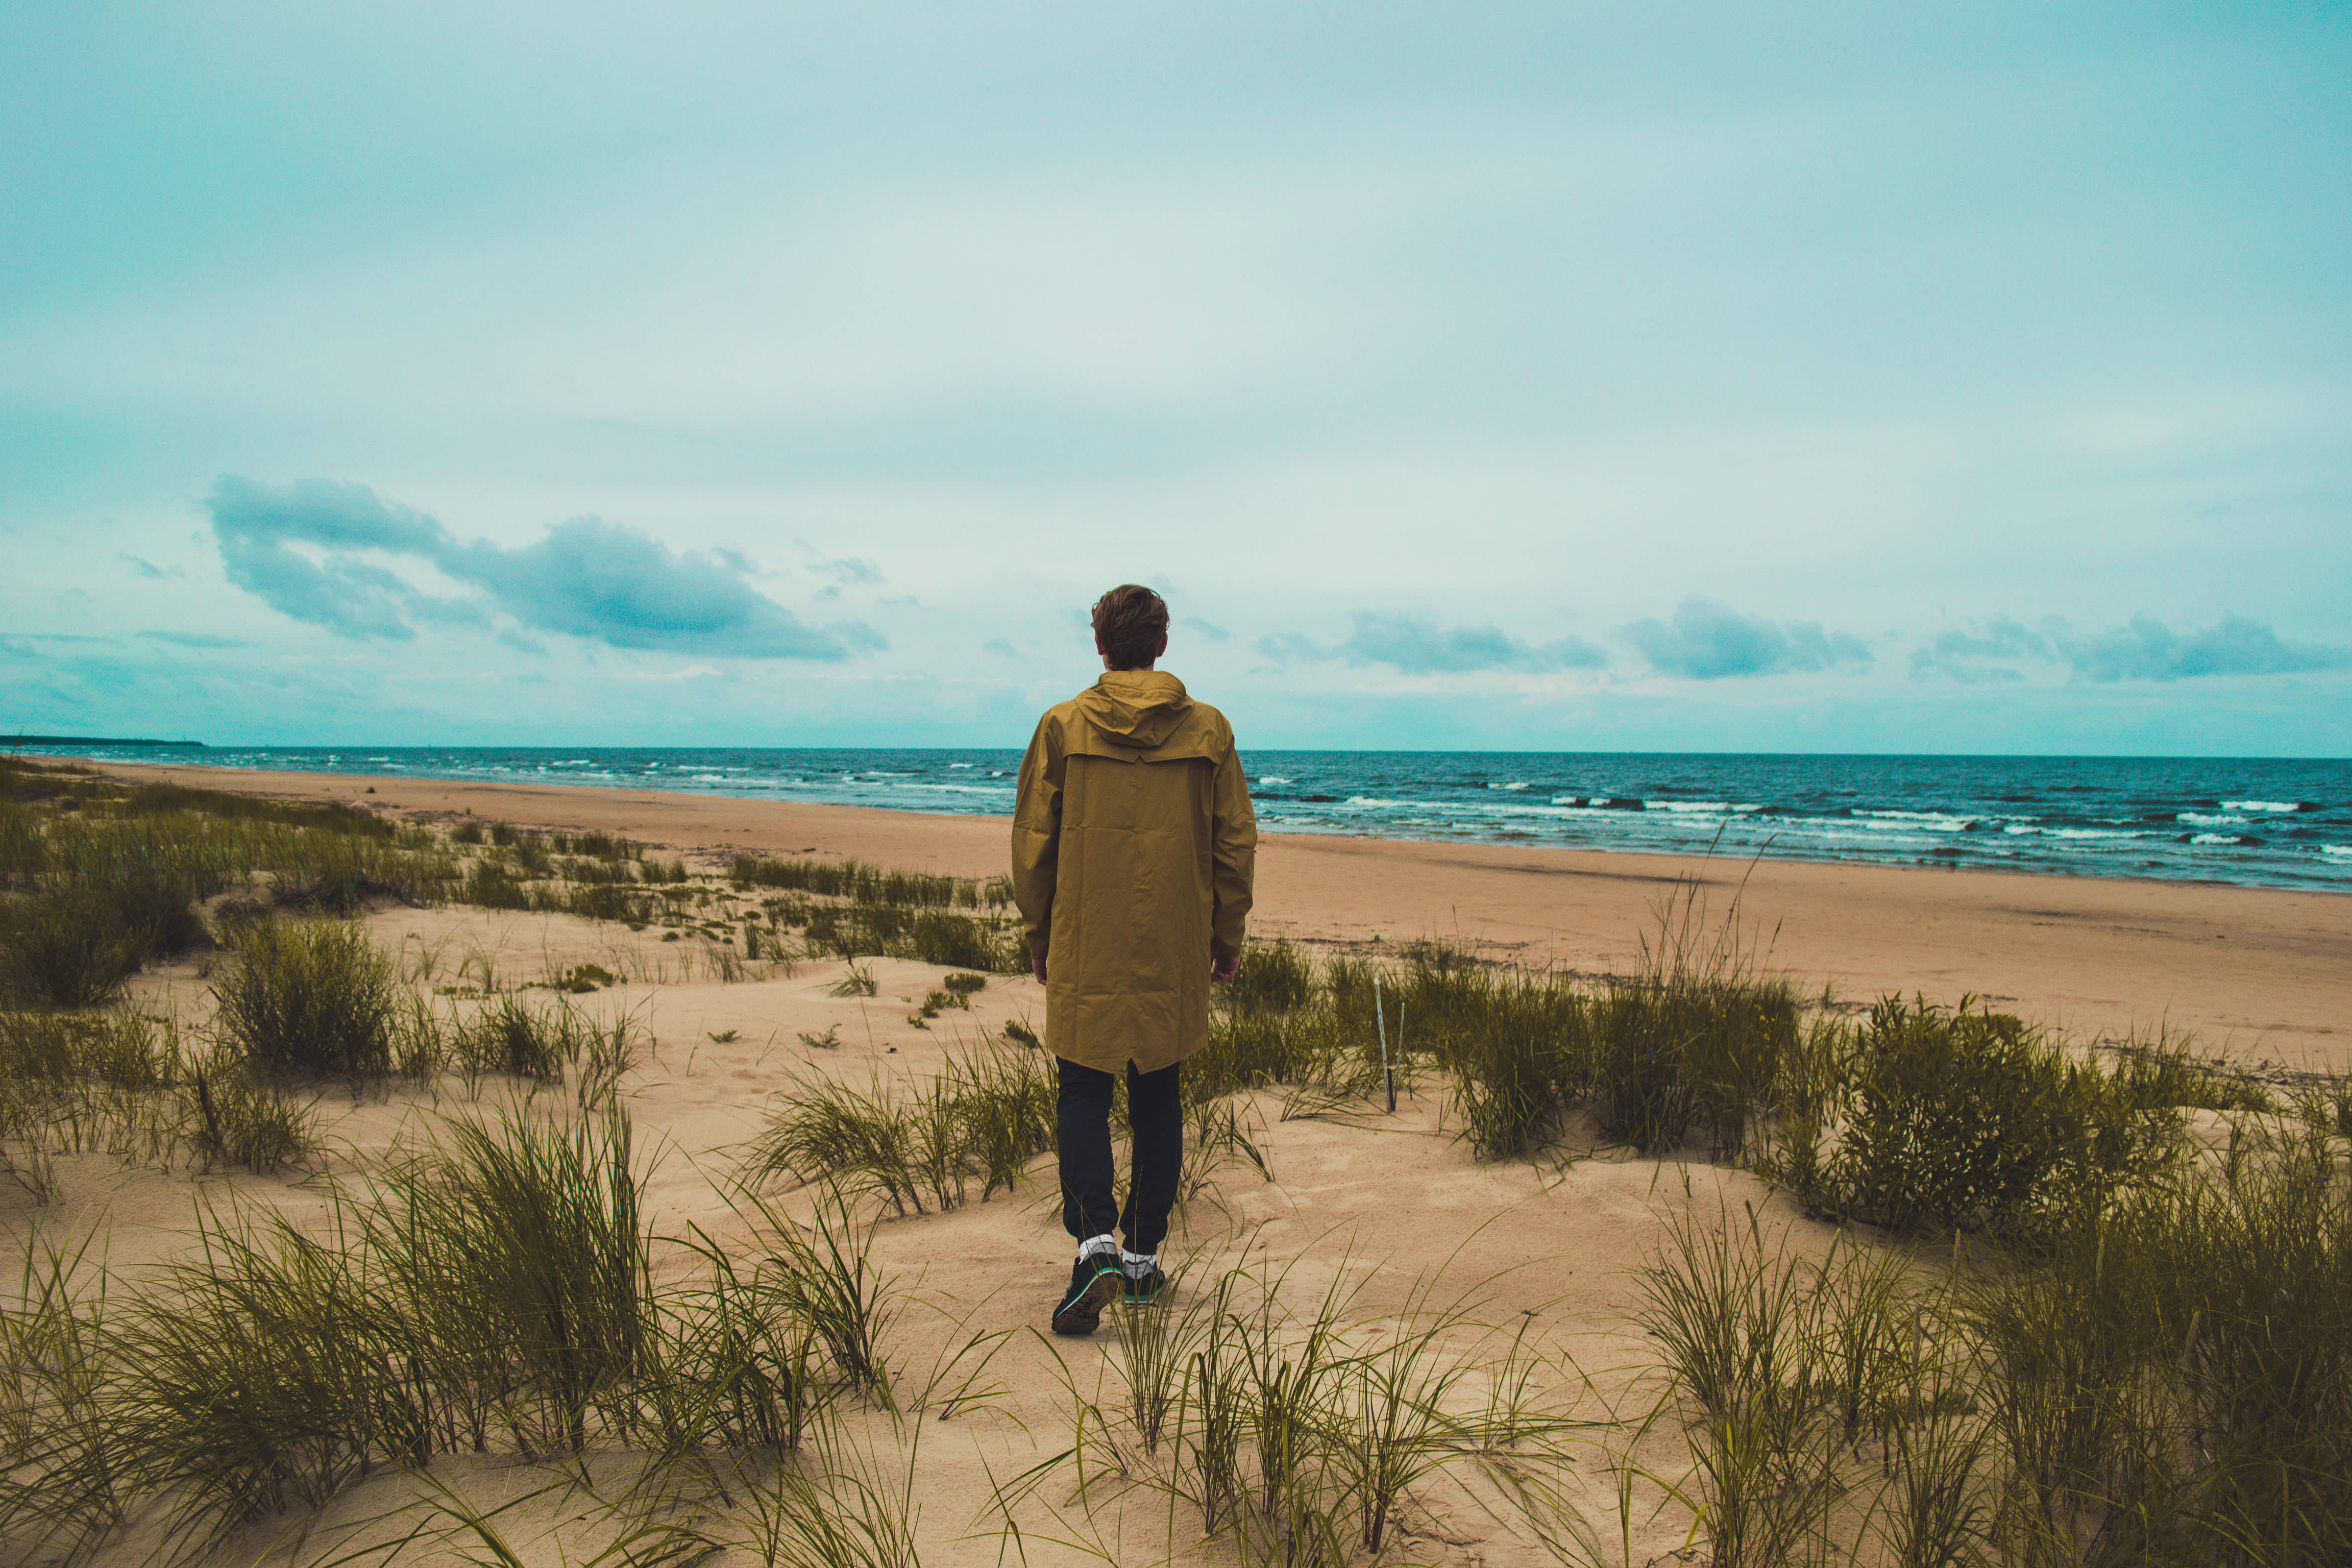 boss-fight-free-high-quality-stock-images-photos-photography-person-beach-walking